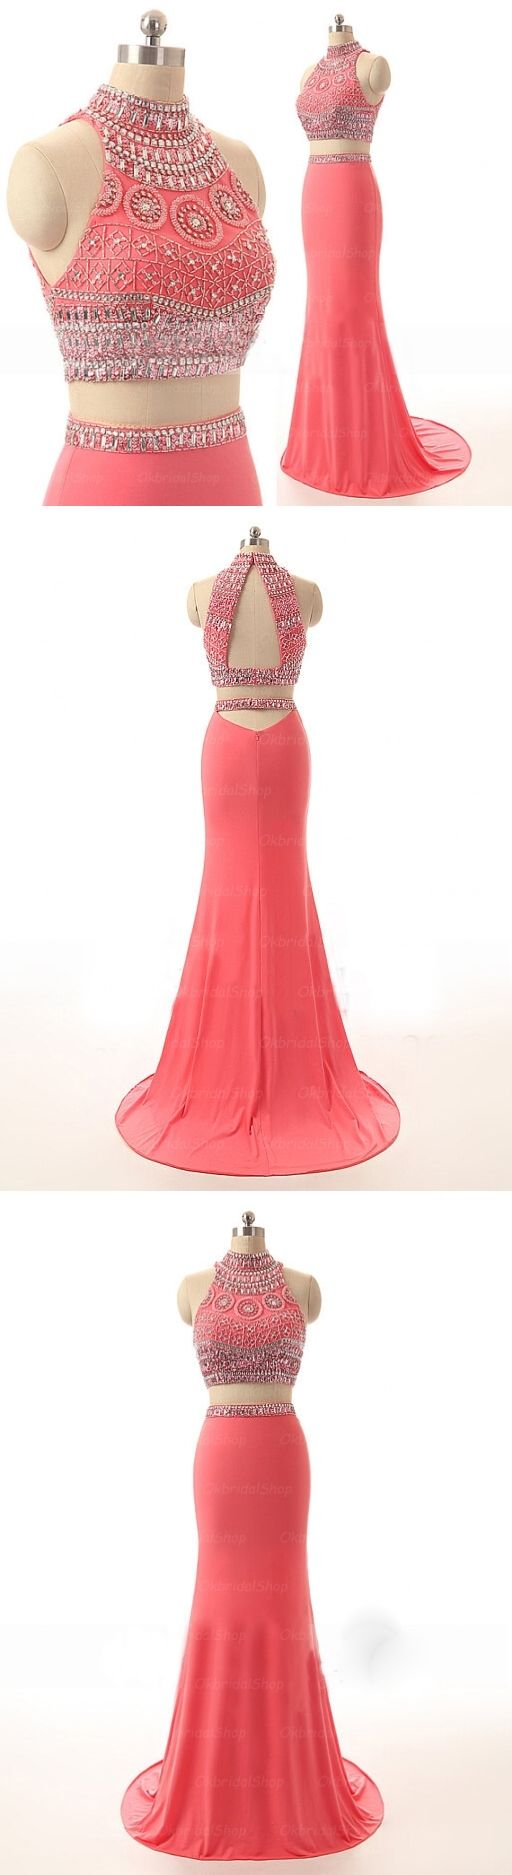 Long Prom Dresses, 2 pieces prom dresses, sexy mermaid prom dresses, coral prom dresses, prom dress online